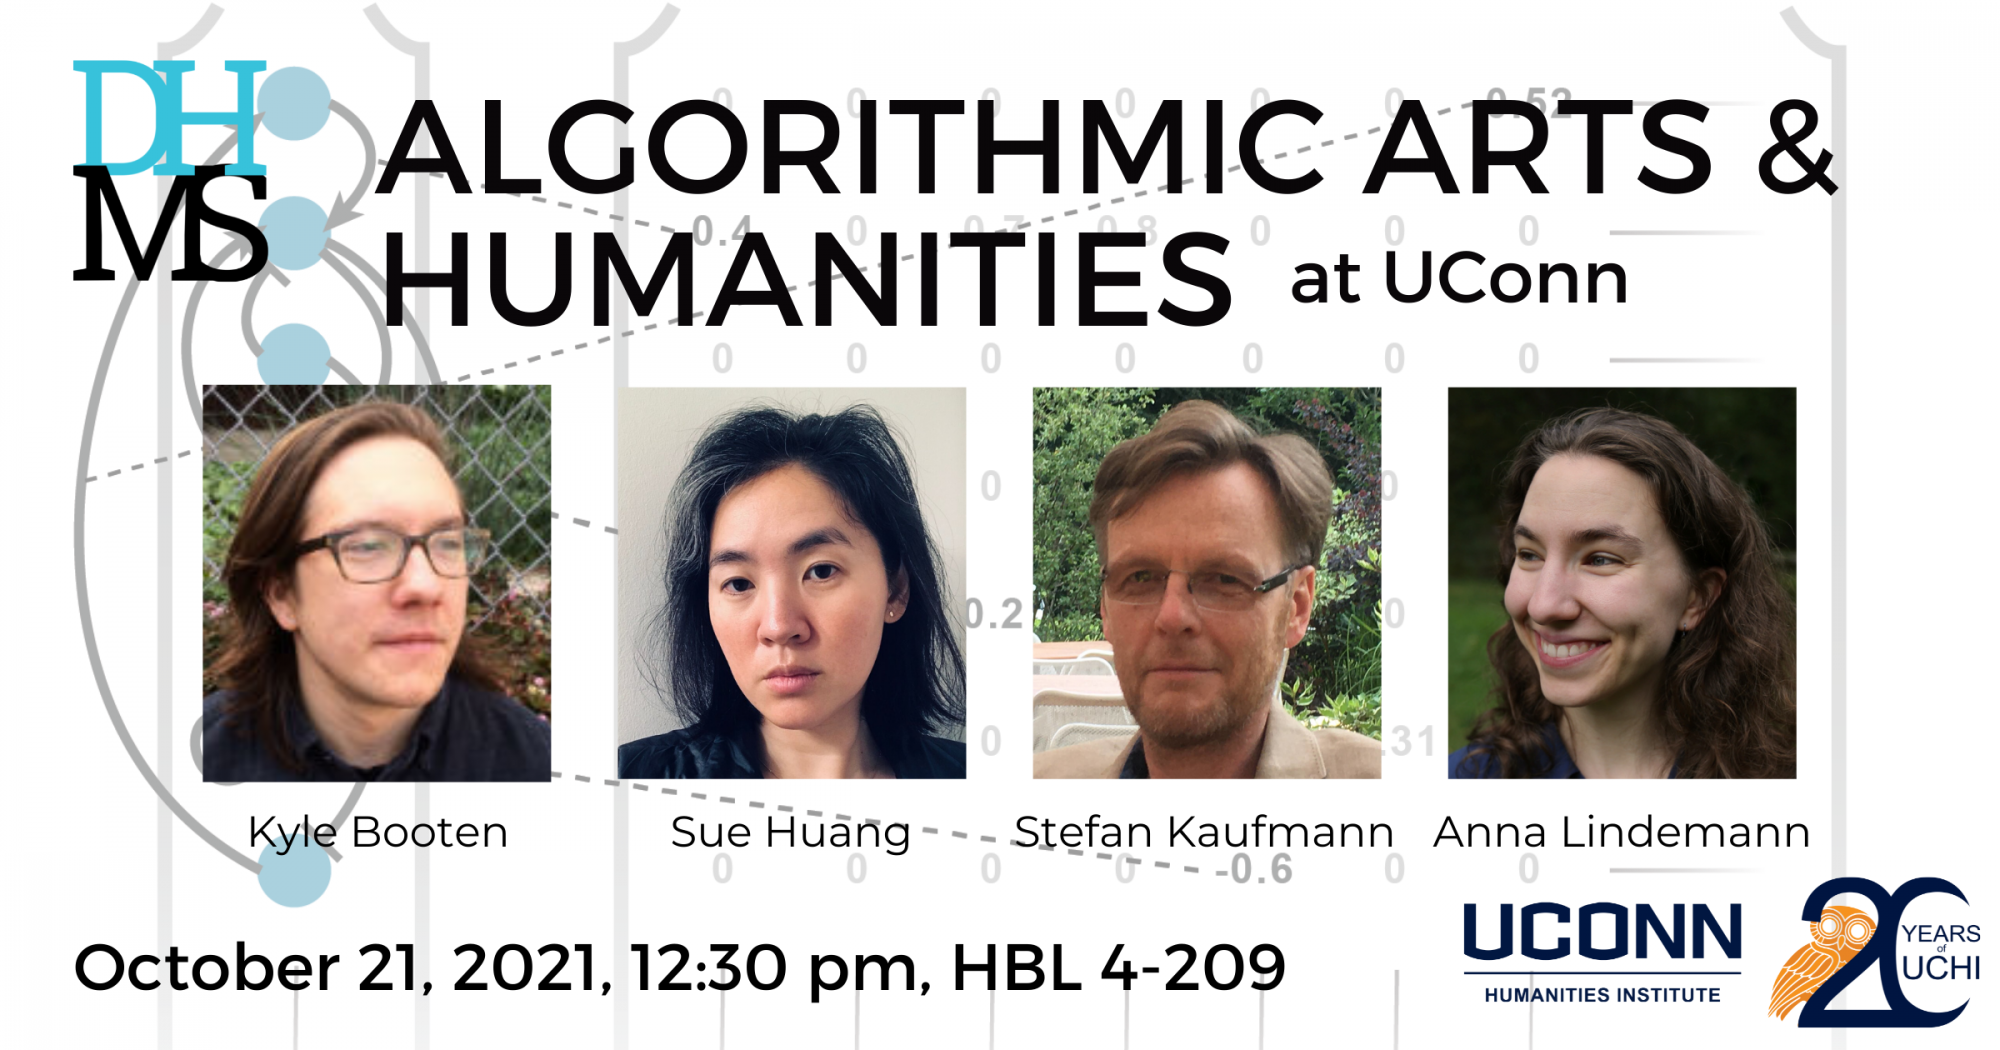 DHMS: Algorithmic Arts and Humanities at UConn. October 21, 2021, 12:30pm. HBL 4-209